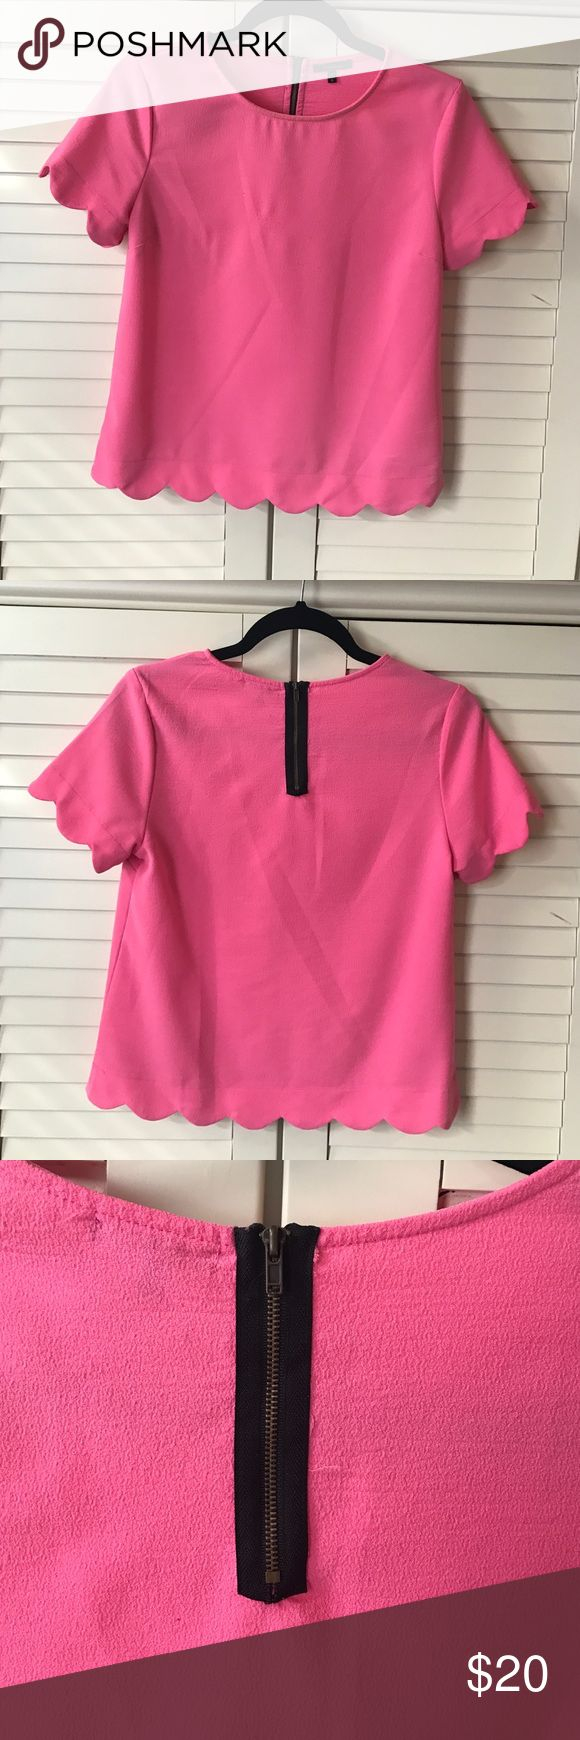 Pink Scalloped Top ••GOOD CONDITION•• pink Scalloped top. Zipper detail on back. Small patch of piling as shown. •Make me an offer! Anything is negotiable!• listed as Zara for exposure Zara Tops